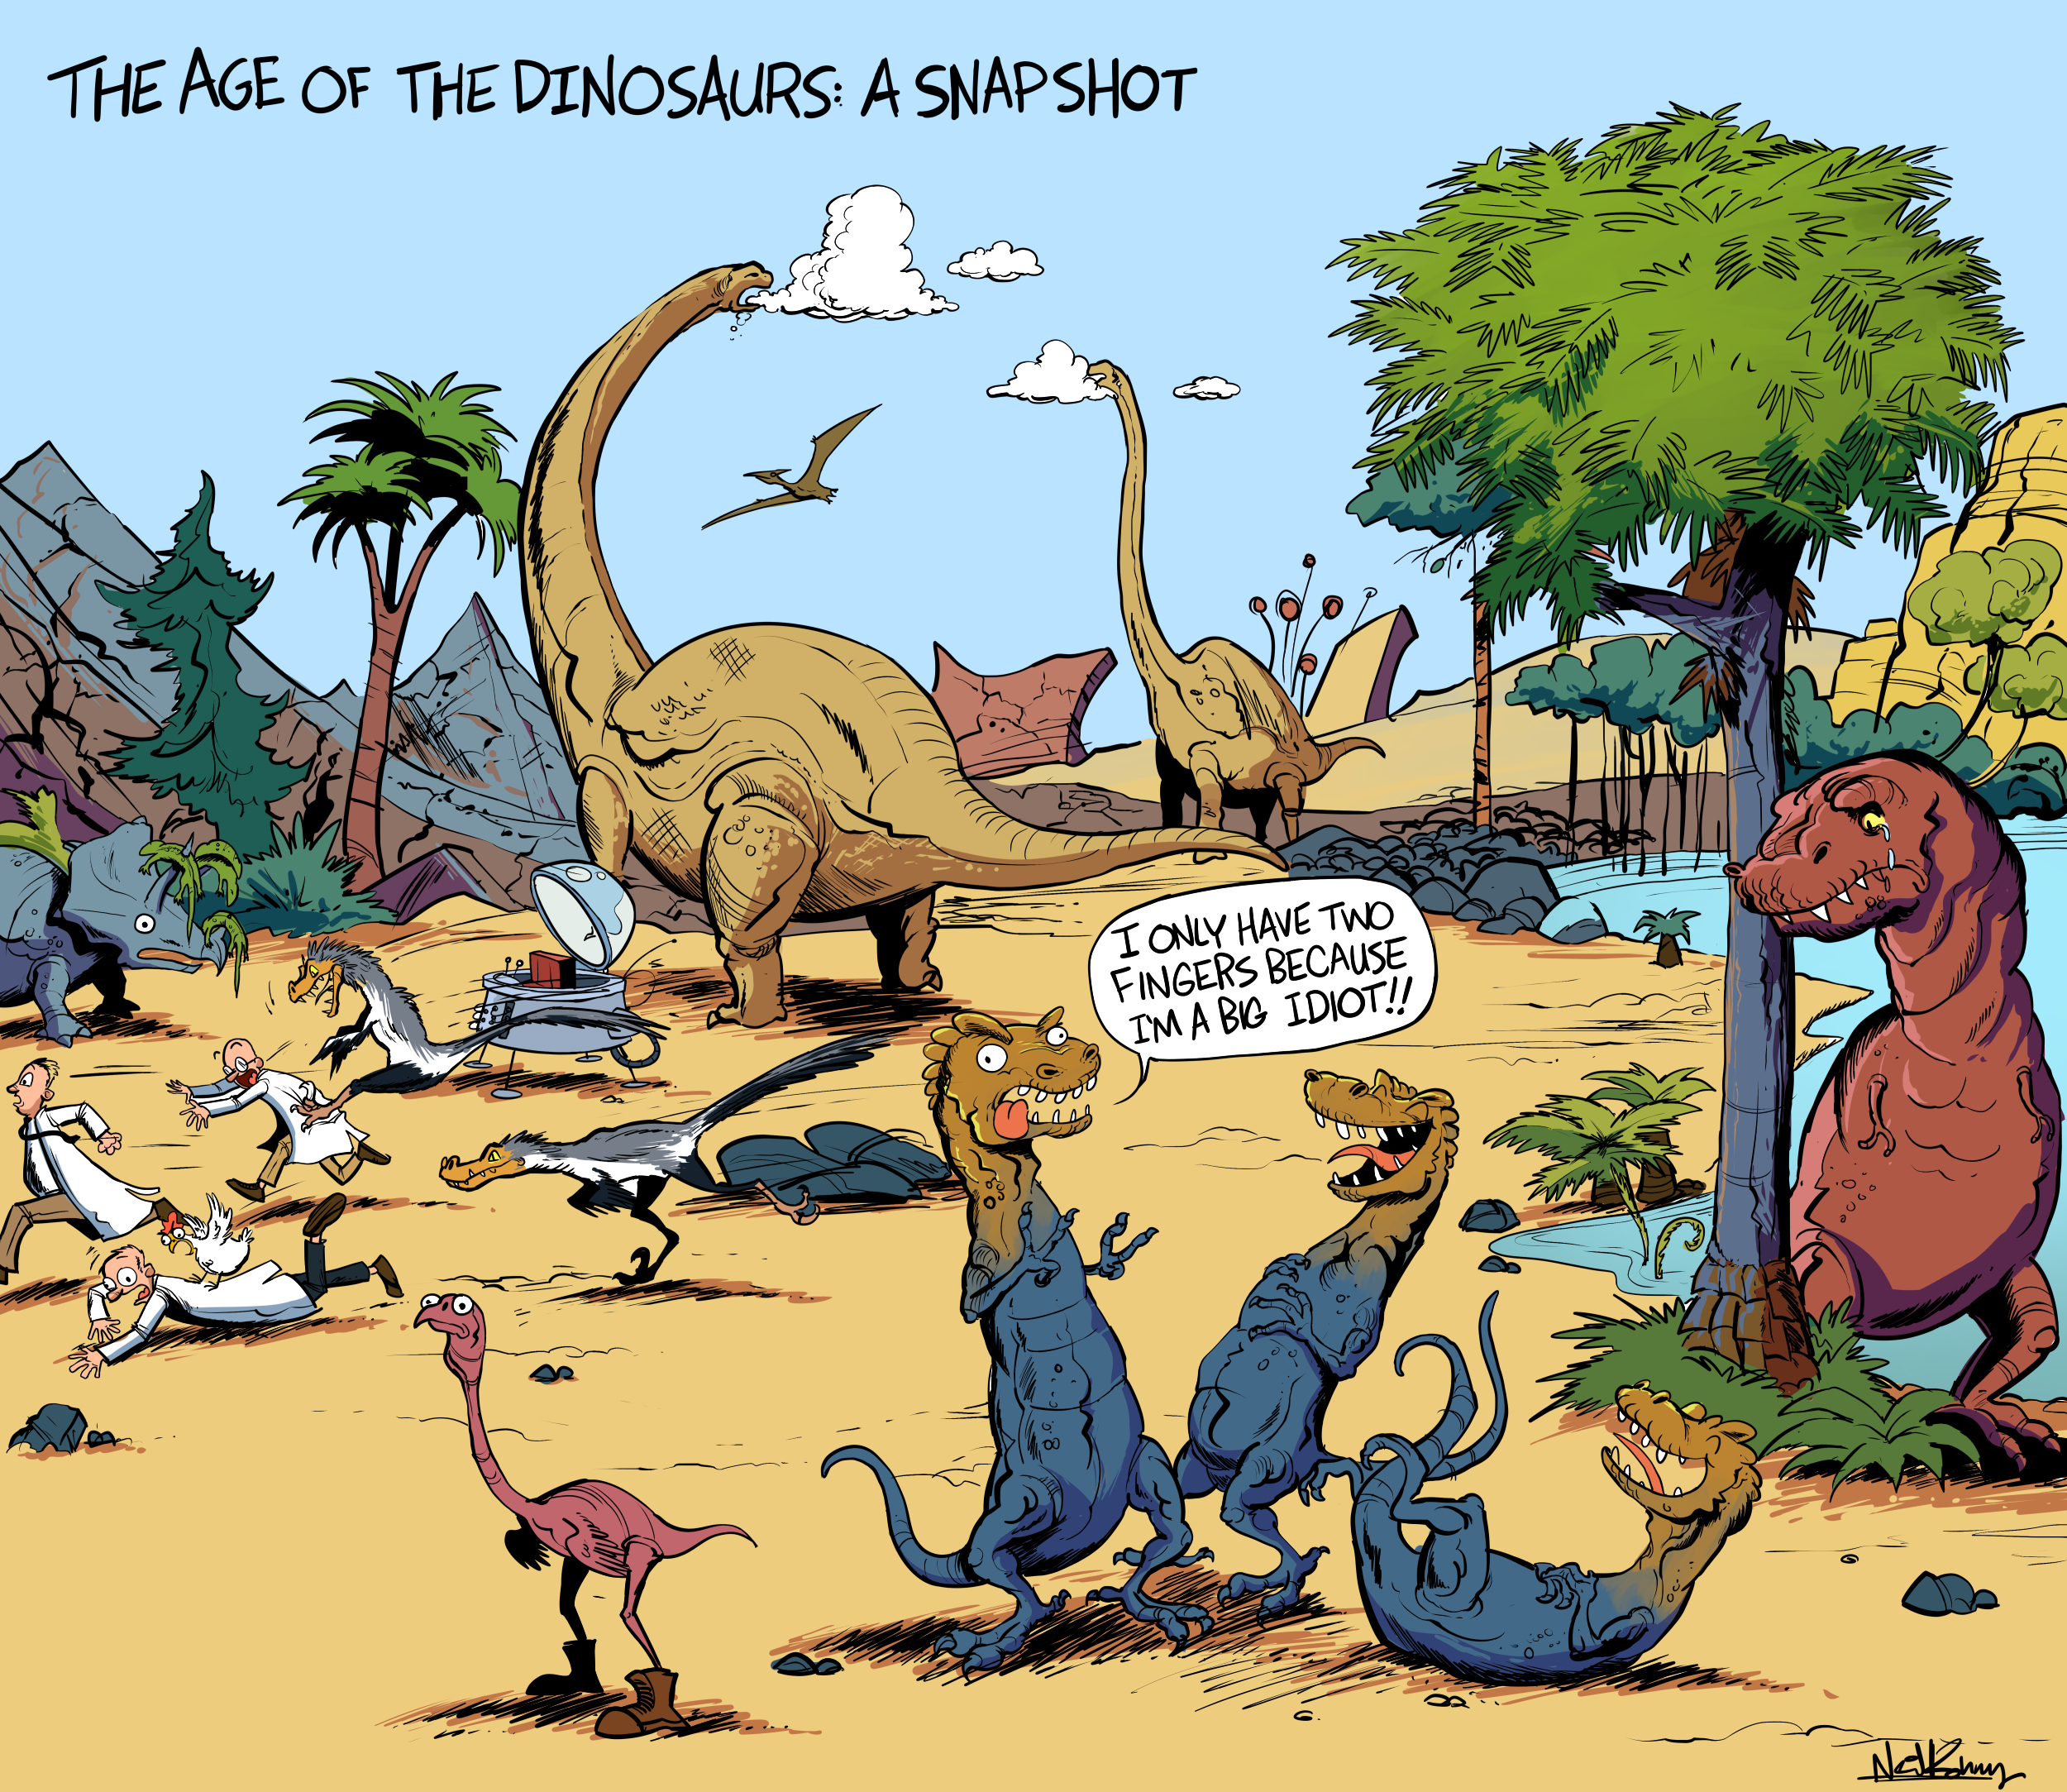 Some of these unspecified dinosaurs may or may not have lived in the same era or geographic region. This comic is so fake.